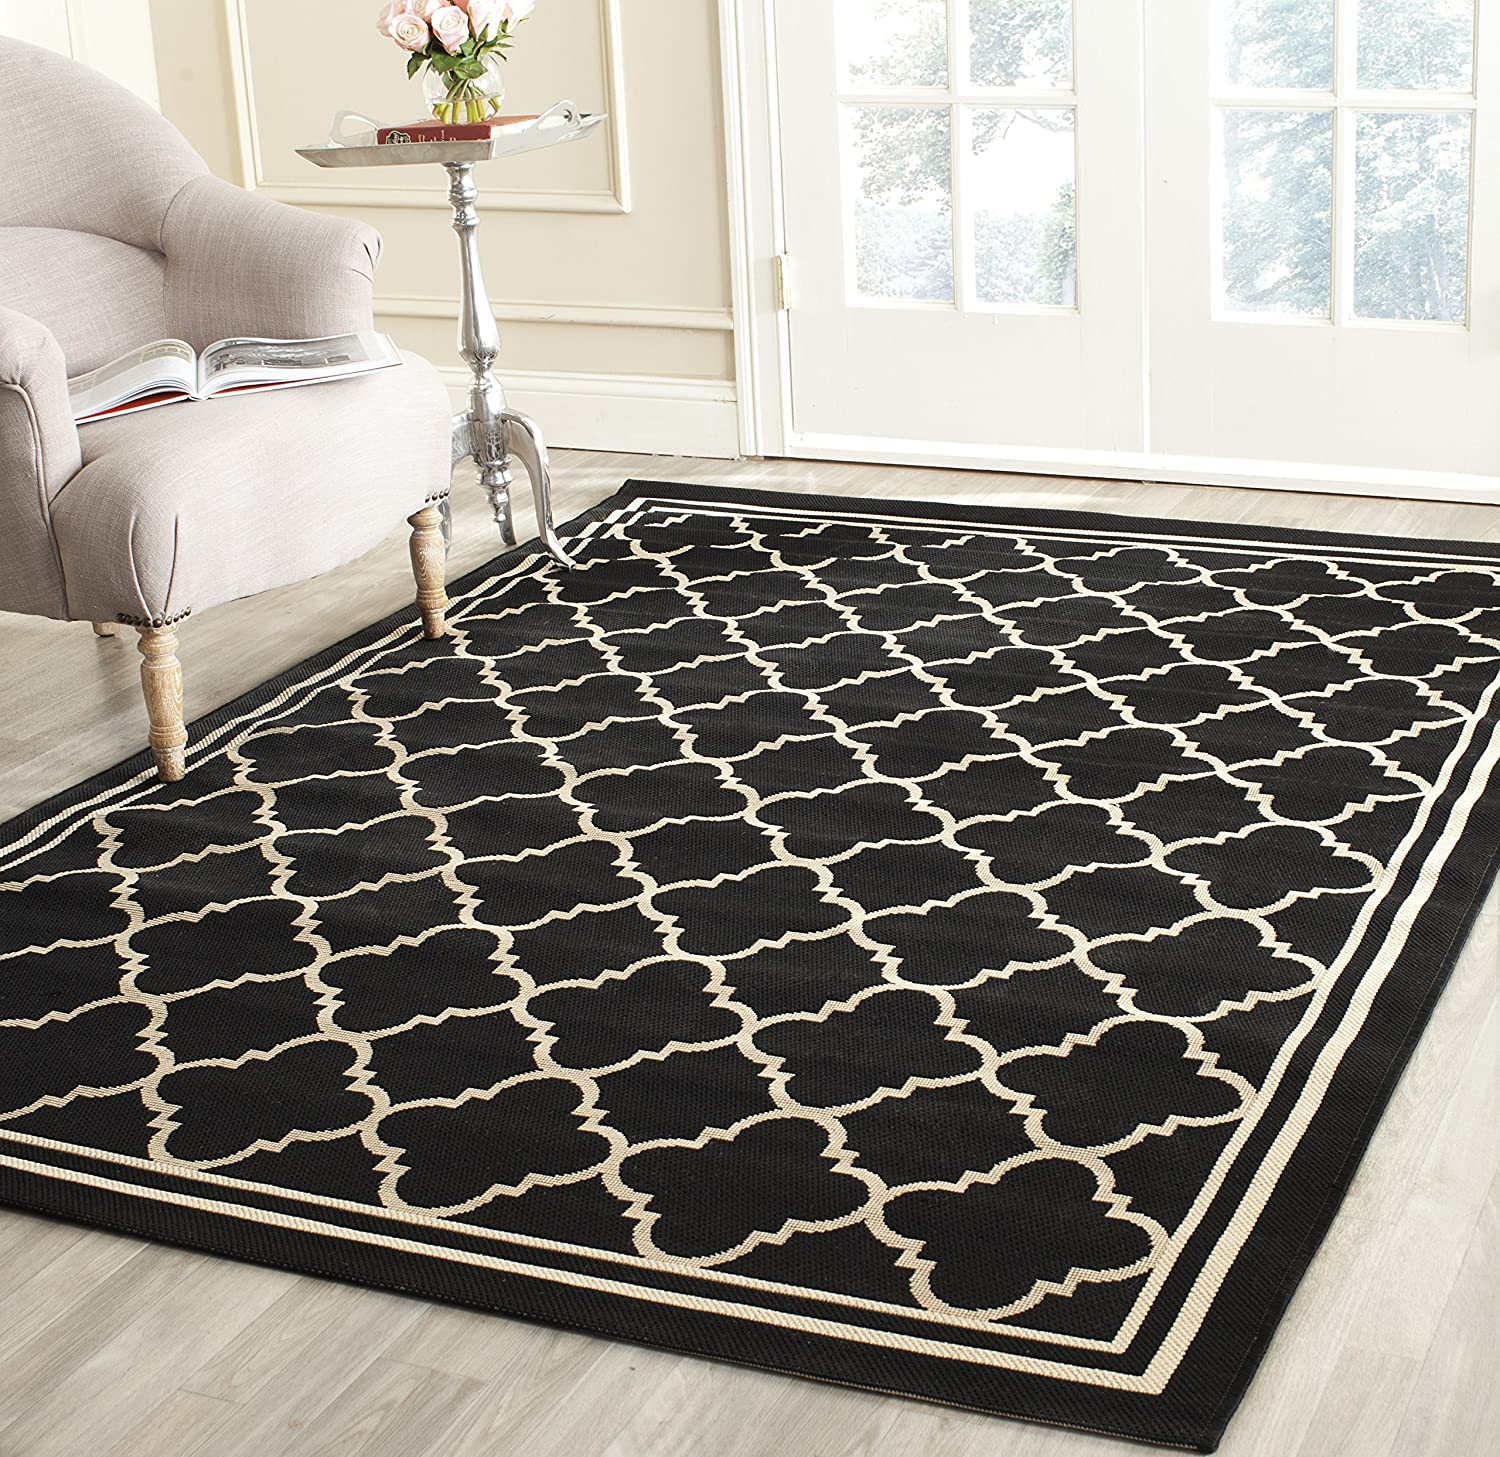 Amazon.com: Safavieh Courtyard Collection CY6918-226 Black and ...